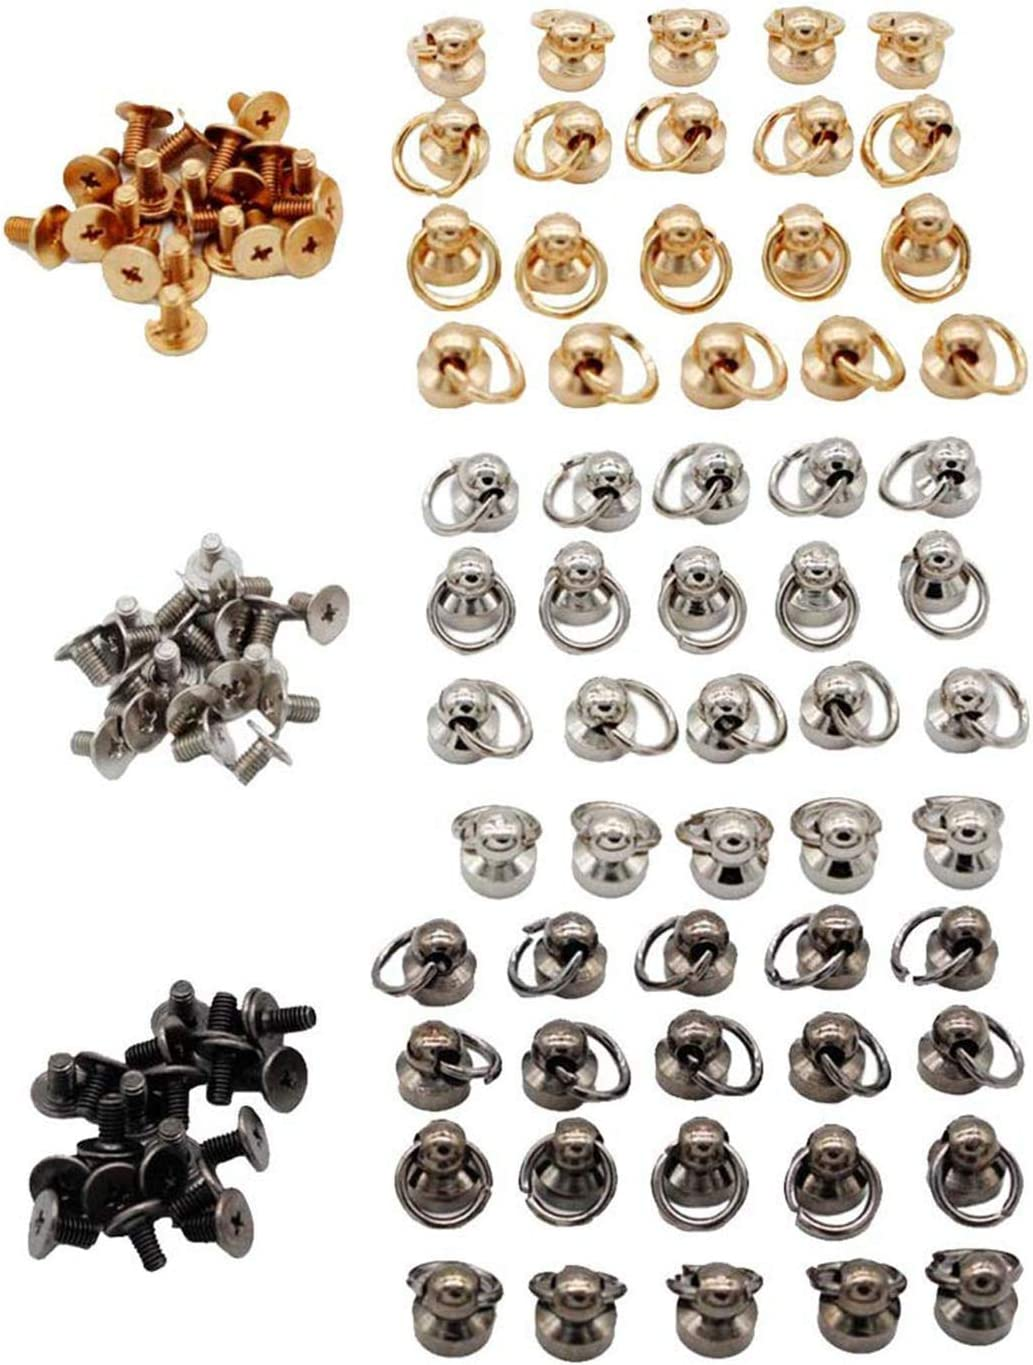 8mm Myriad Choices 20 Sets Ball Post with O Ring Rivet Stud Round Head Screw Back DIY Leather Craft Silver